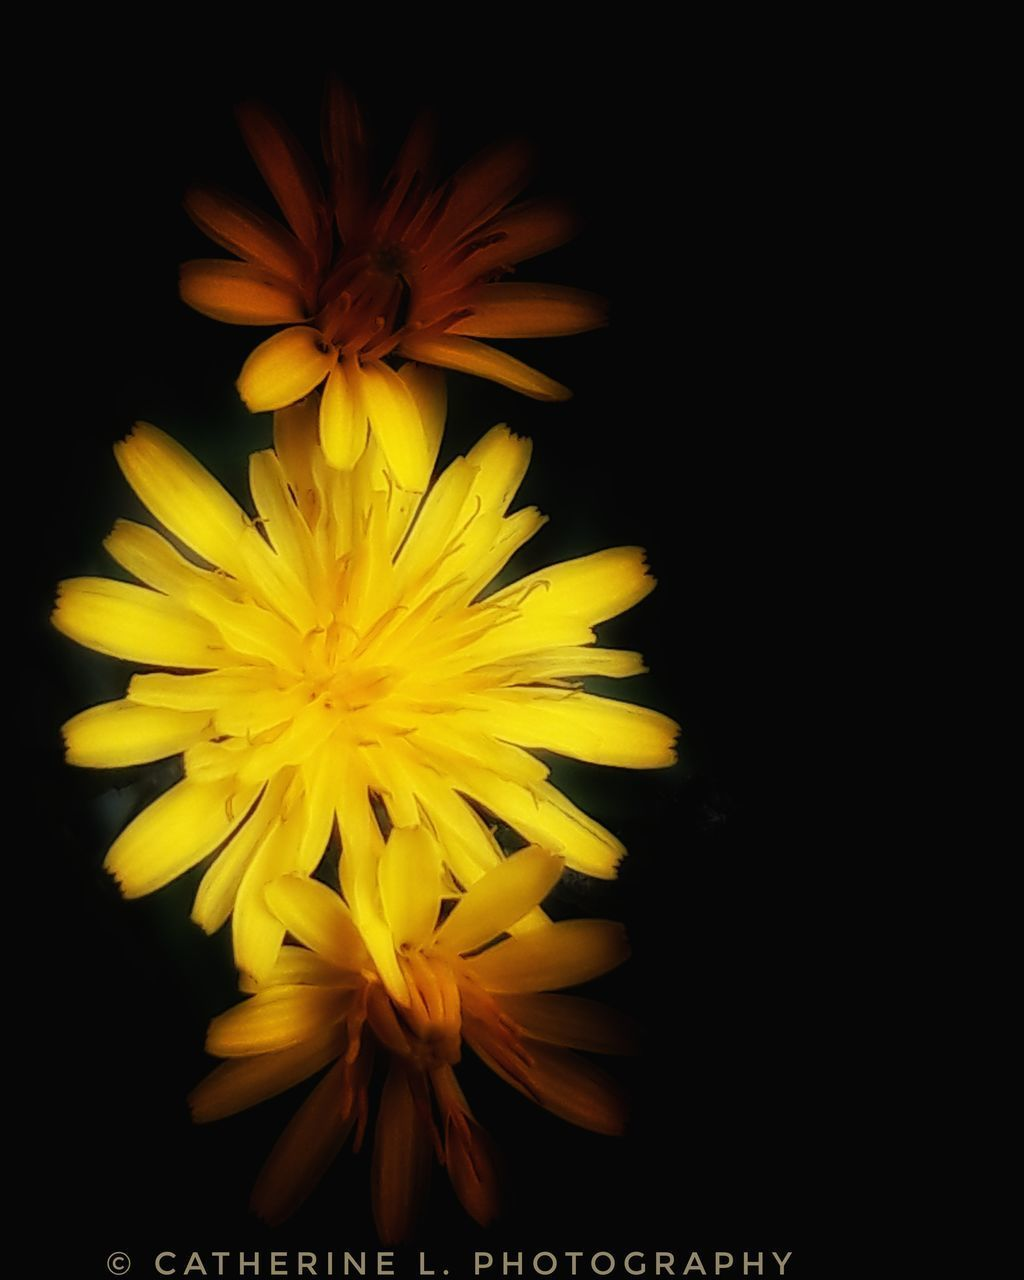 flower, yellow, petal, beauty in nature, nature, flower head, freshness, fragility, growth, black background, no people, blooming, studio shot, close-up, outdoors, day